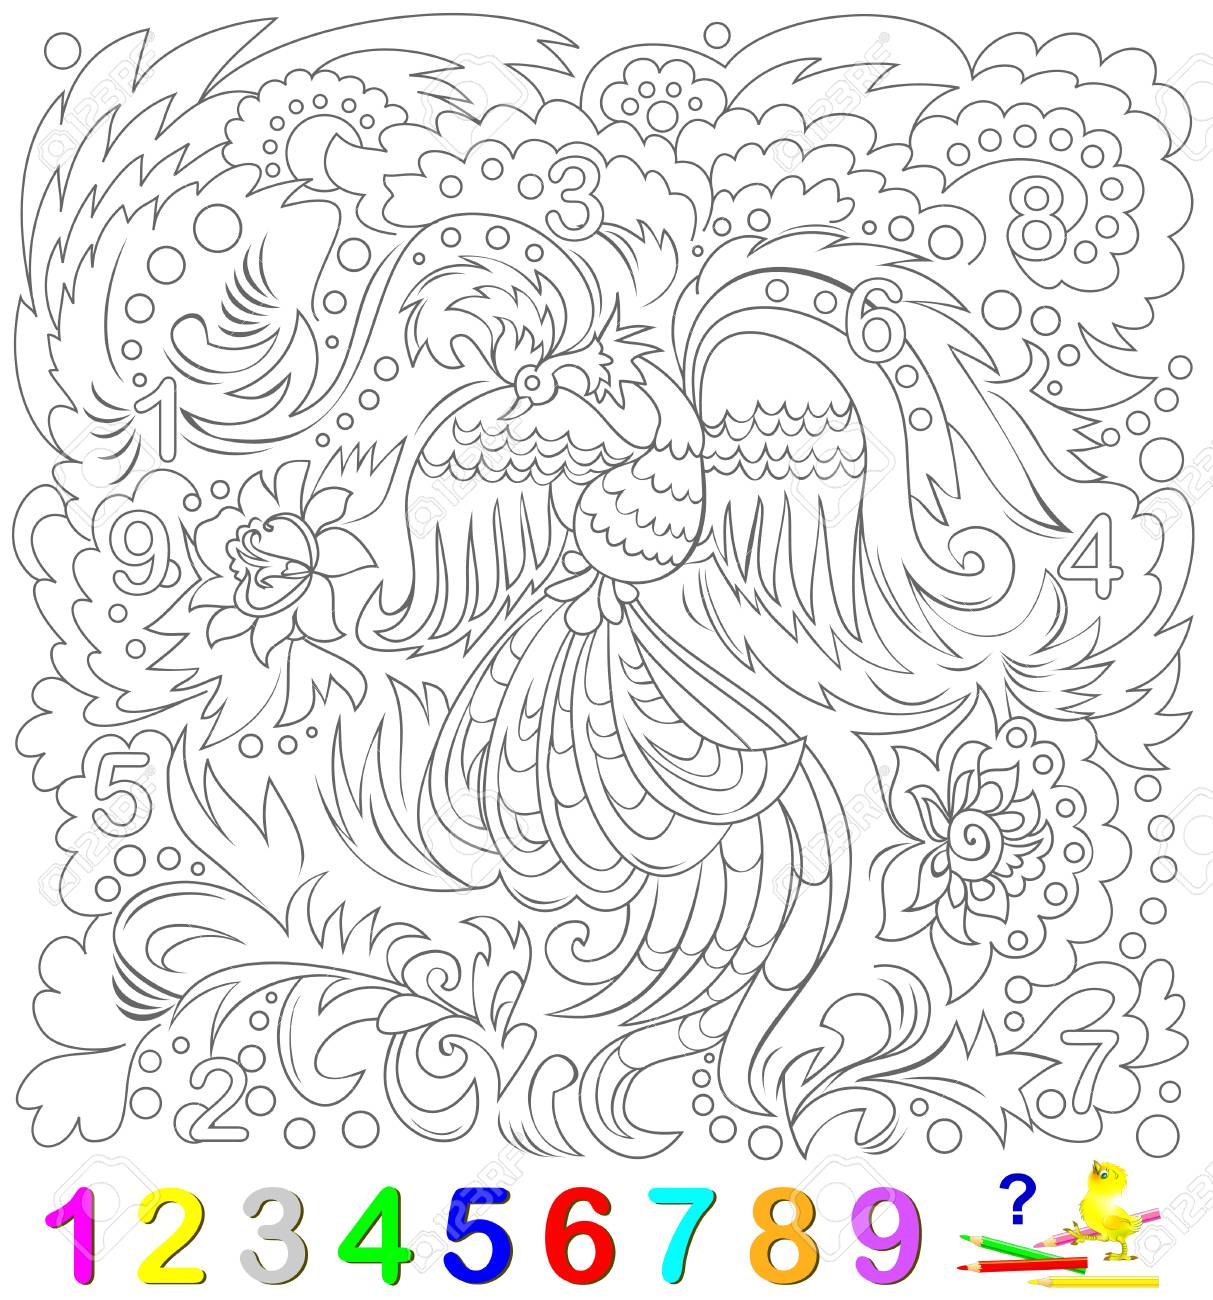 Educational Page For Young Children Find The Numbers Hidden In Picture And Paint Them